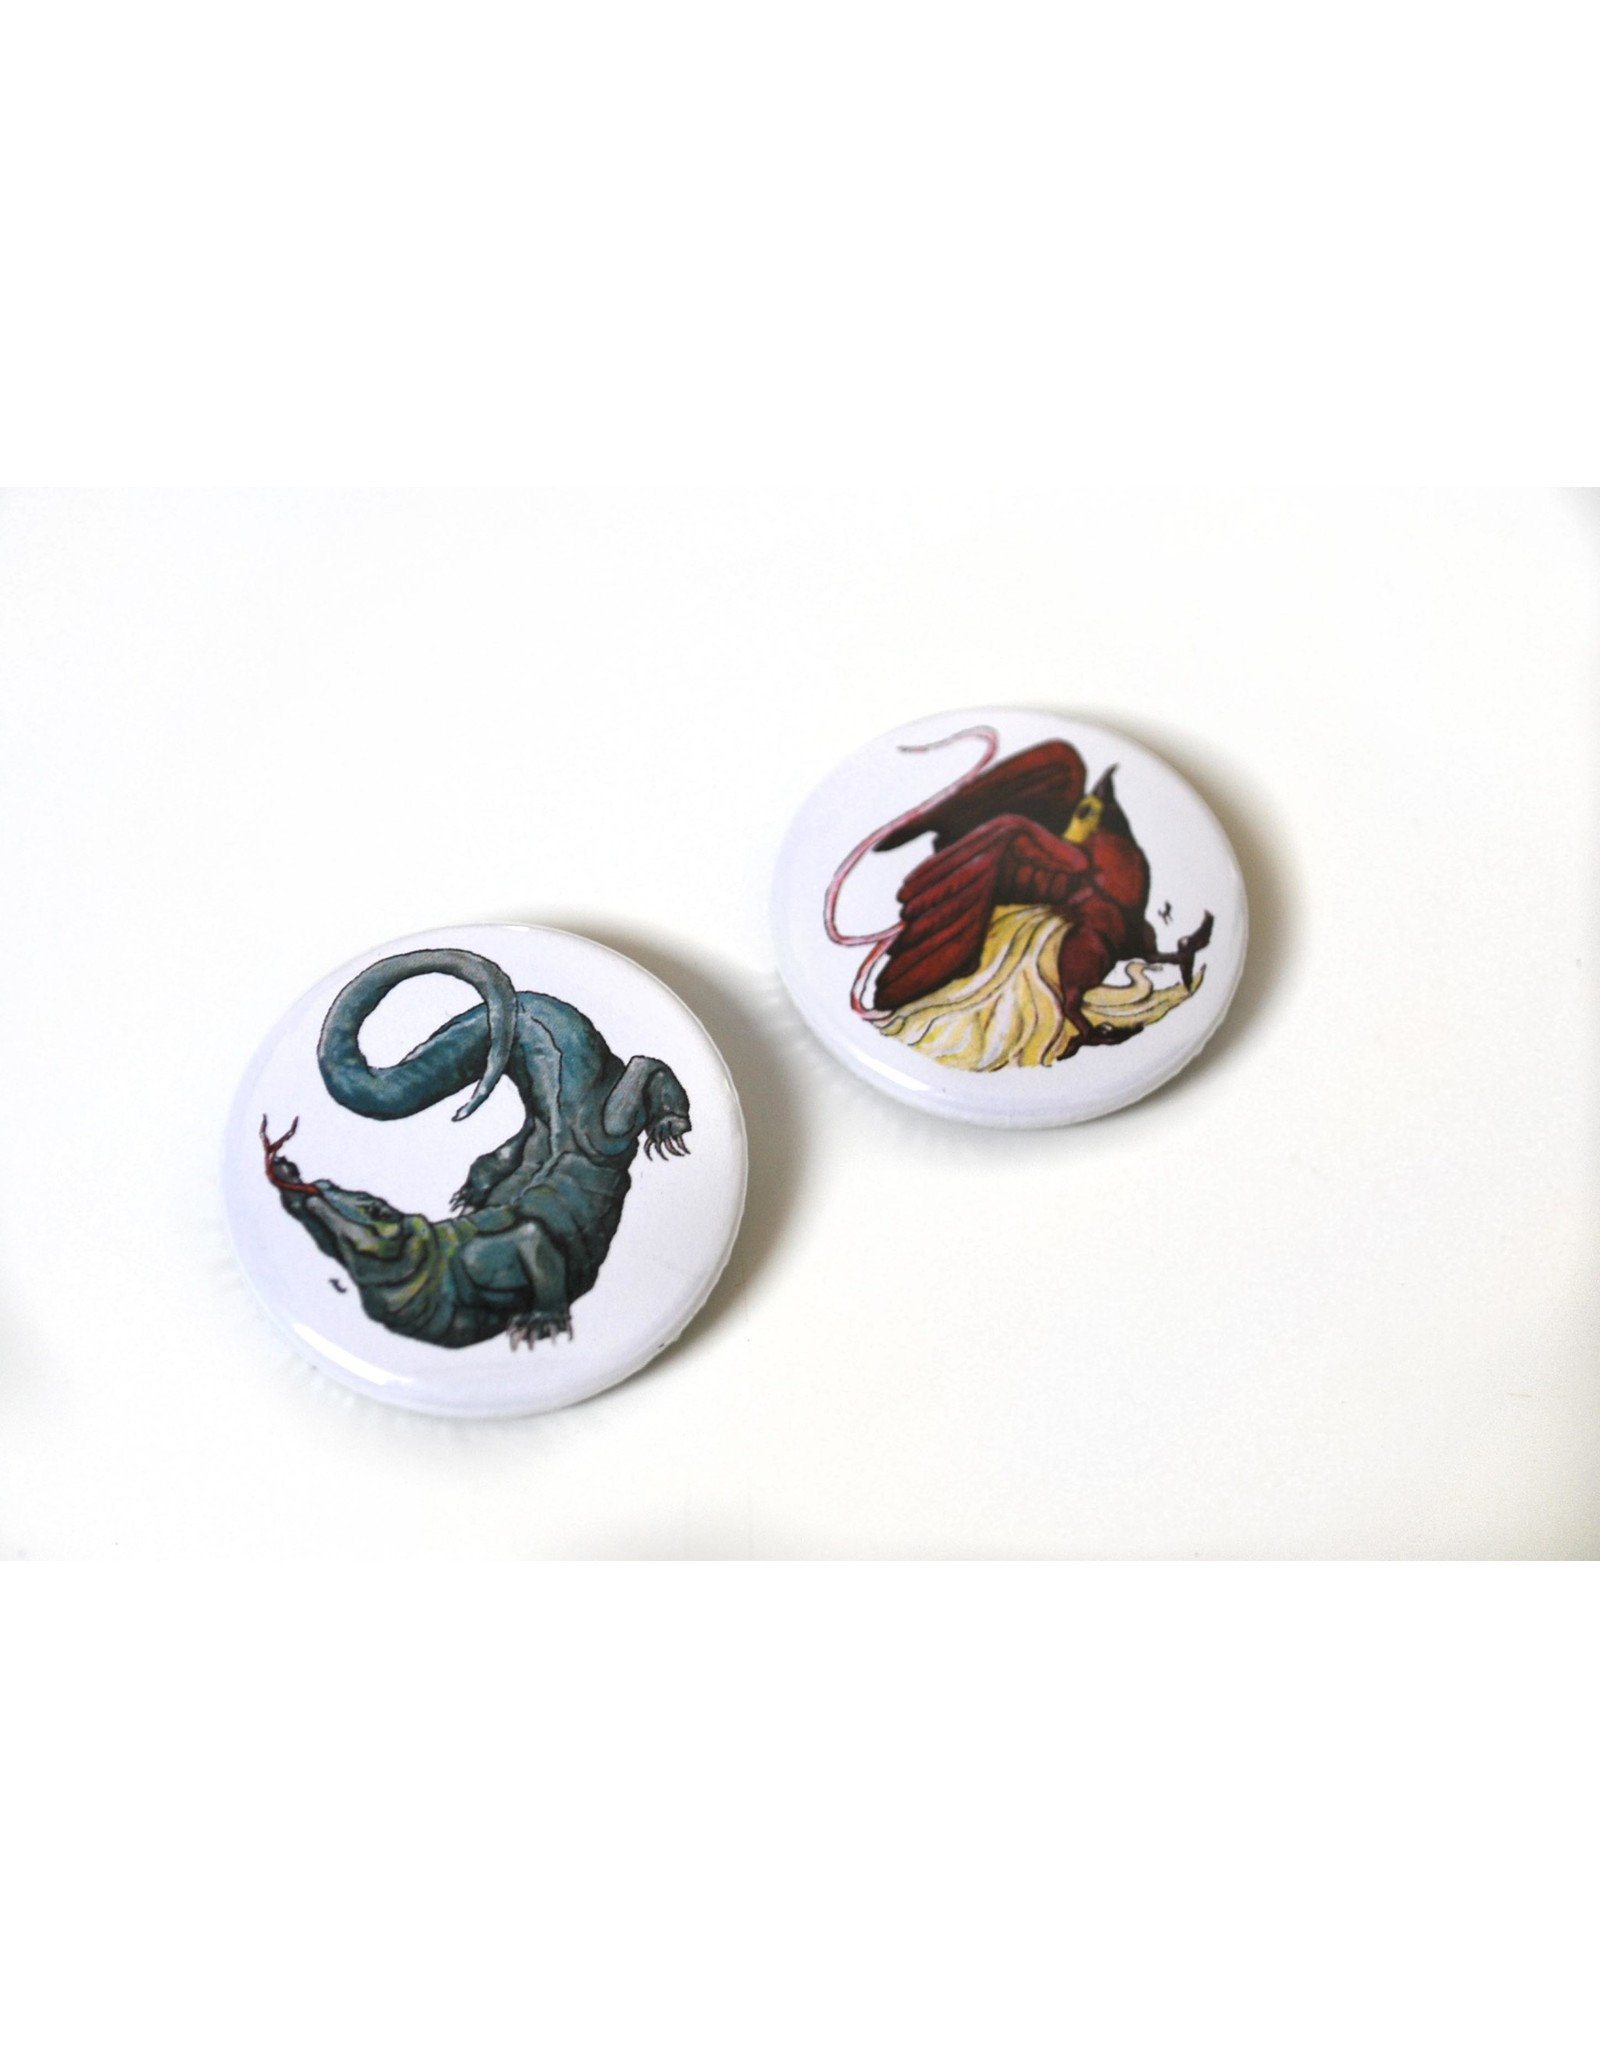 "Set of 2 Buttons (1.5"") by Laiqah Hanold"